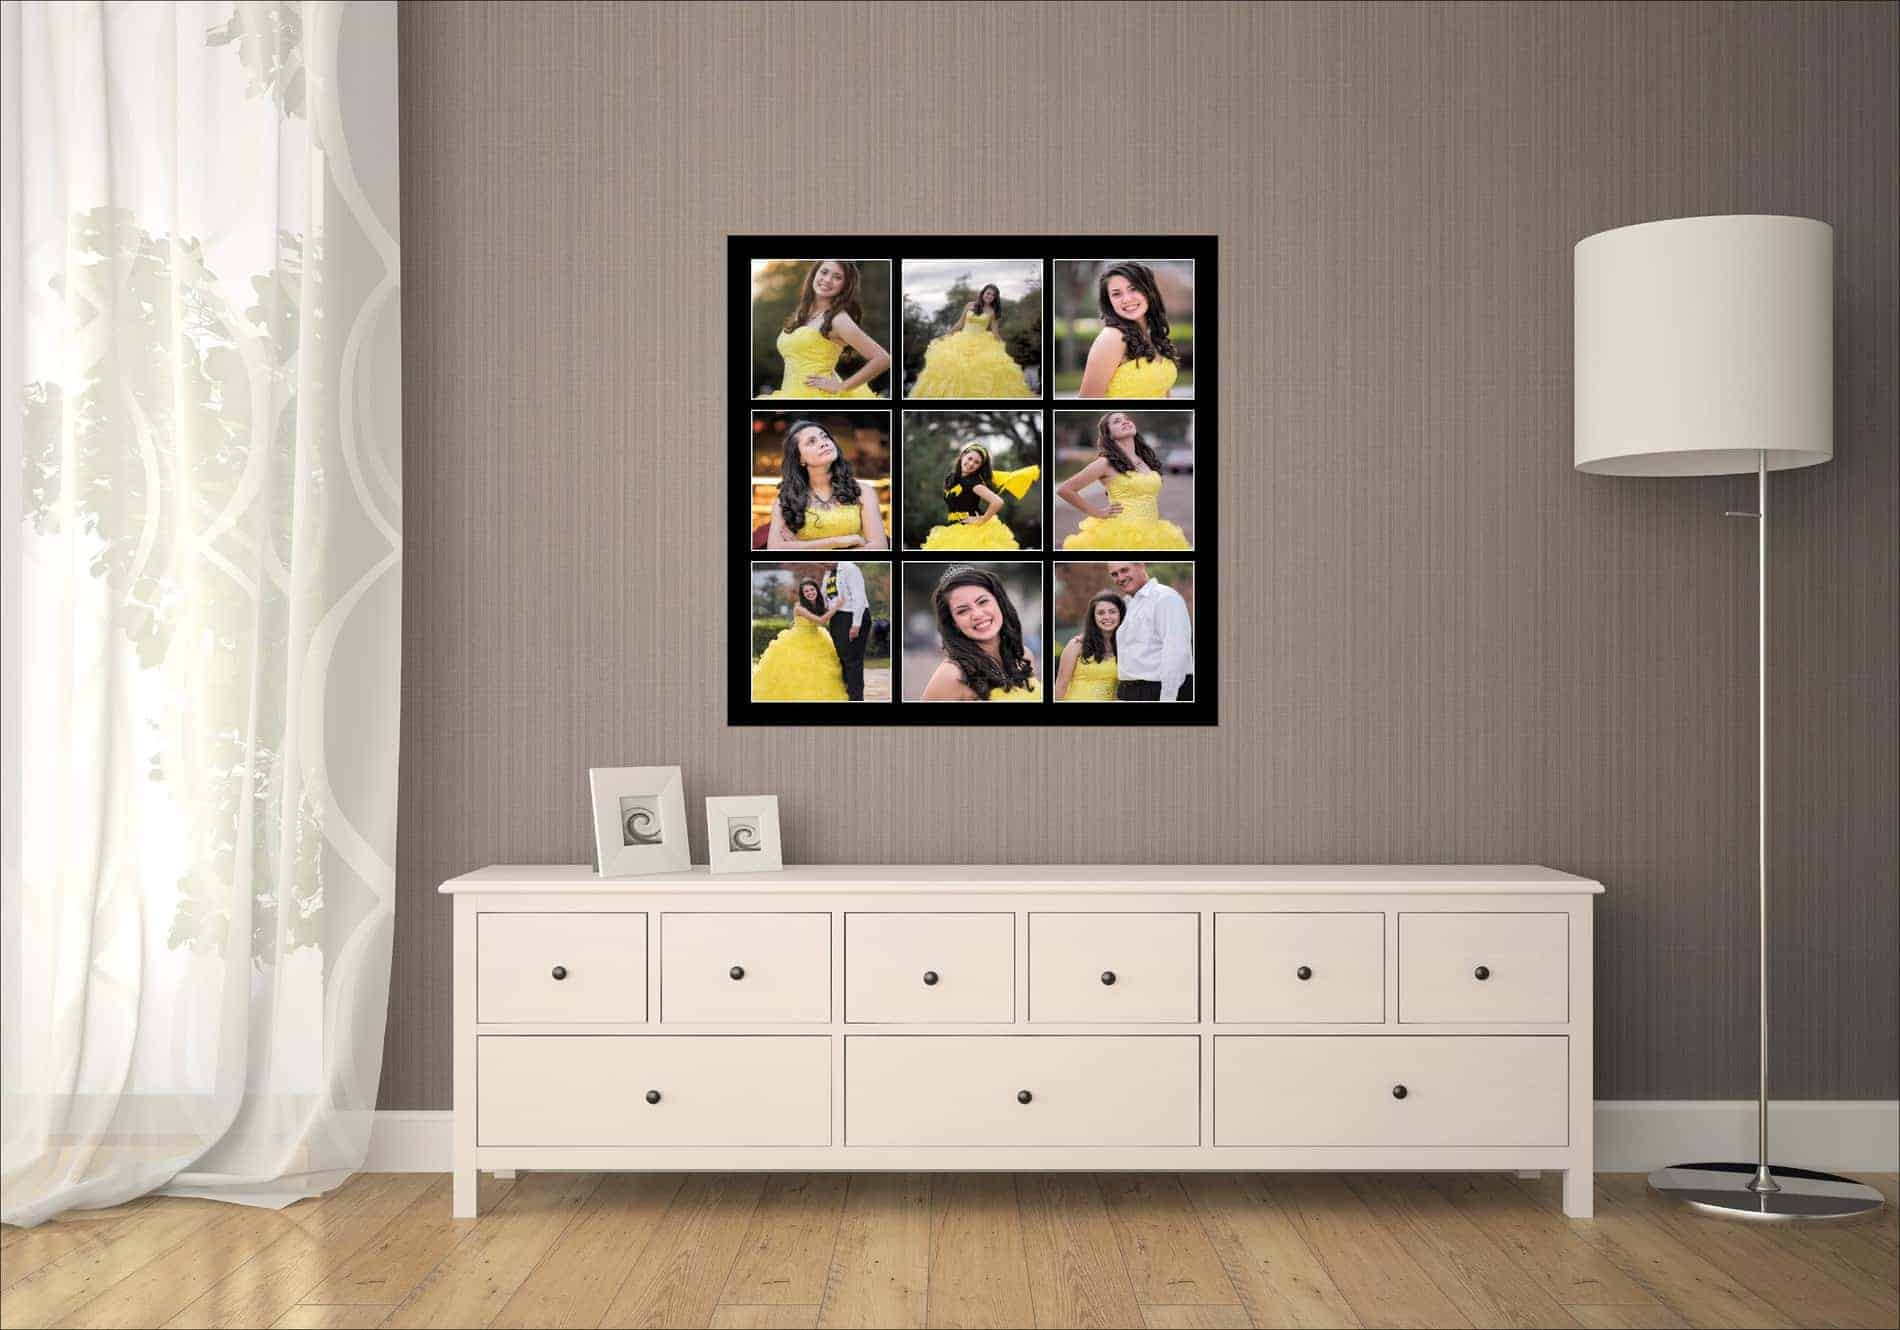 Quinces Formal Portraits on Living Room Wall